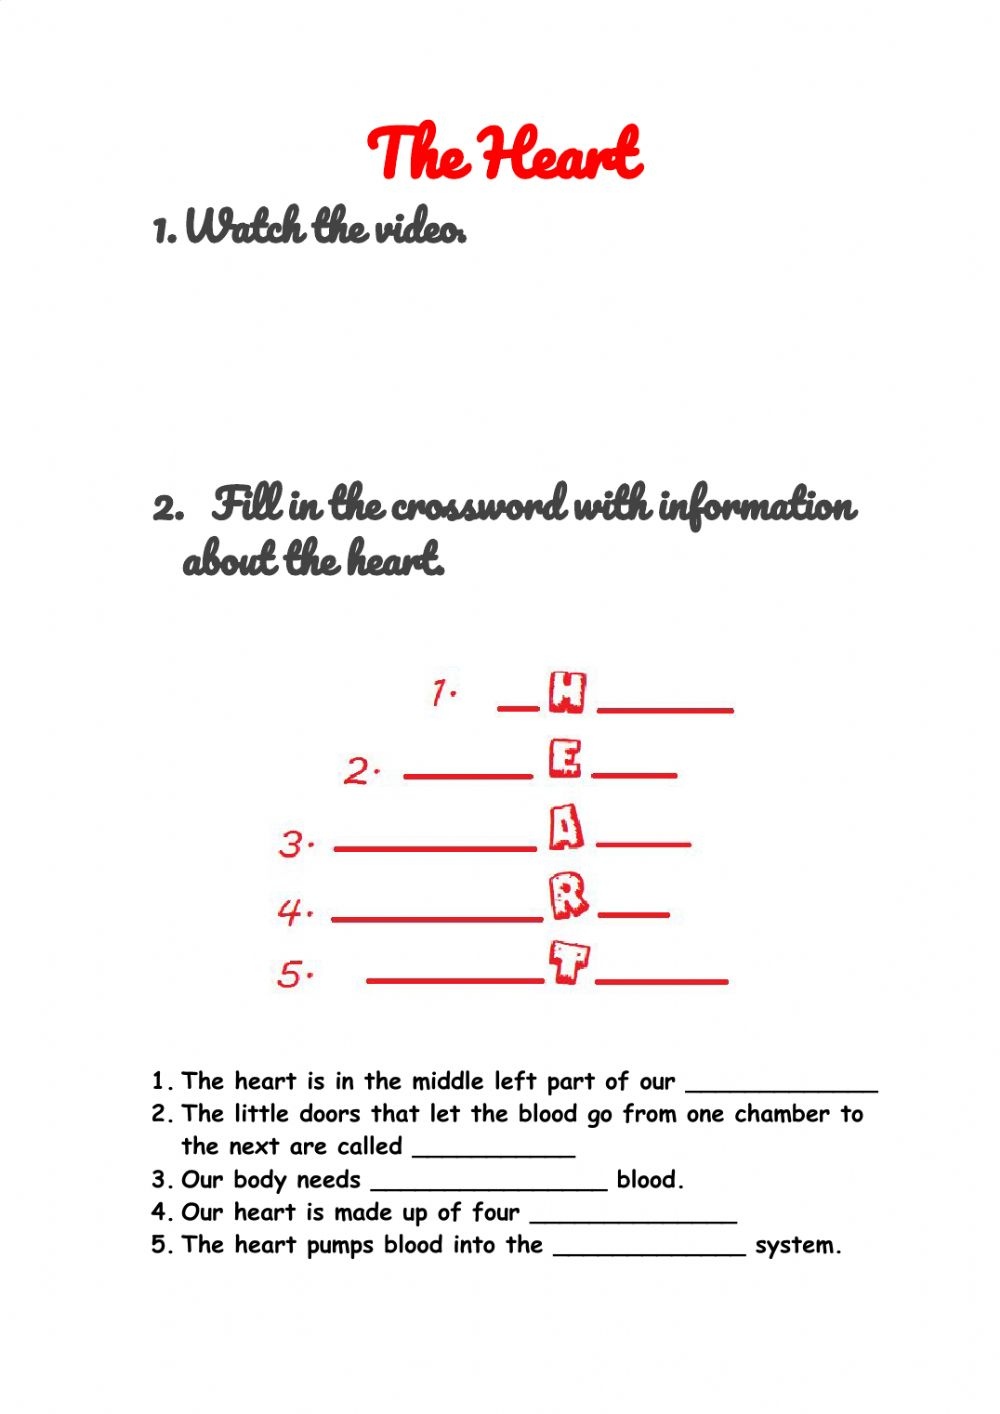 hight resolution of The heart interactive worksheet